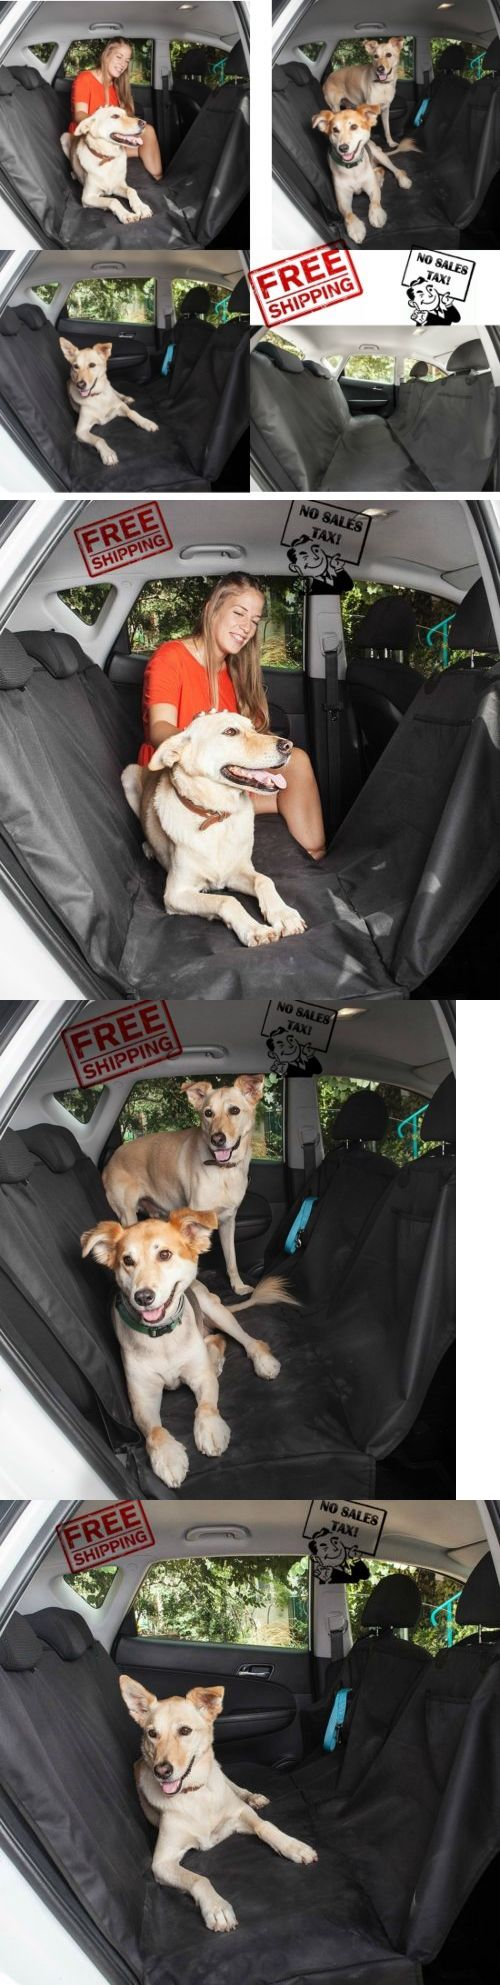 Car Seat Covers 117426: Luxury Pet Car Suv Van Back Rear Bench Seat Cover Waterproof Hammock For Dog Cat -> BUY IT NOW ONLY: $167.92 on eBay!